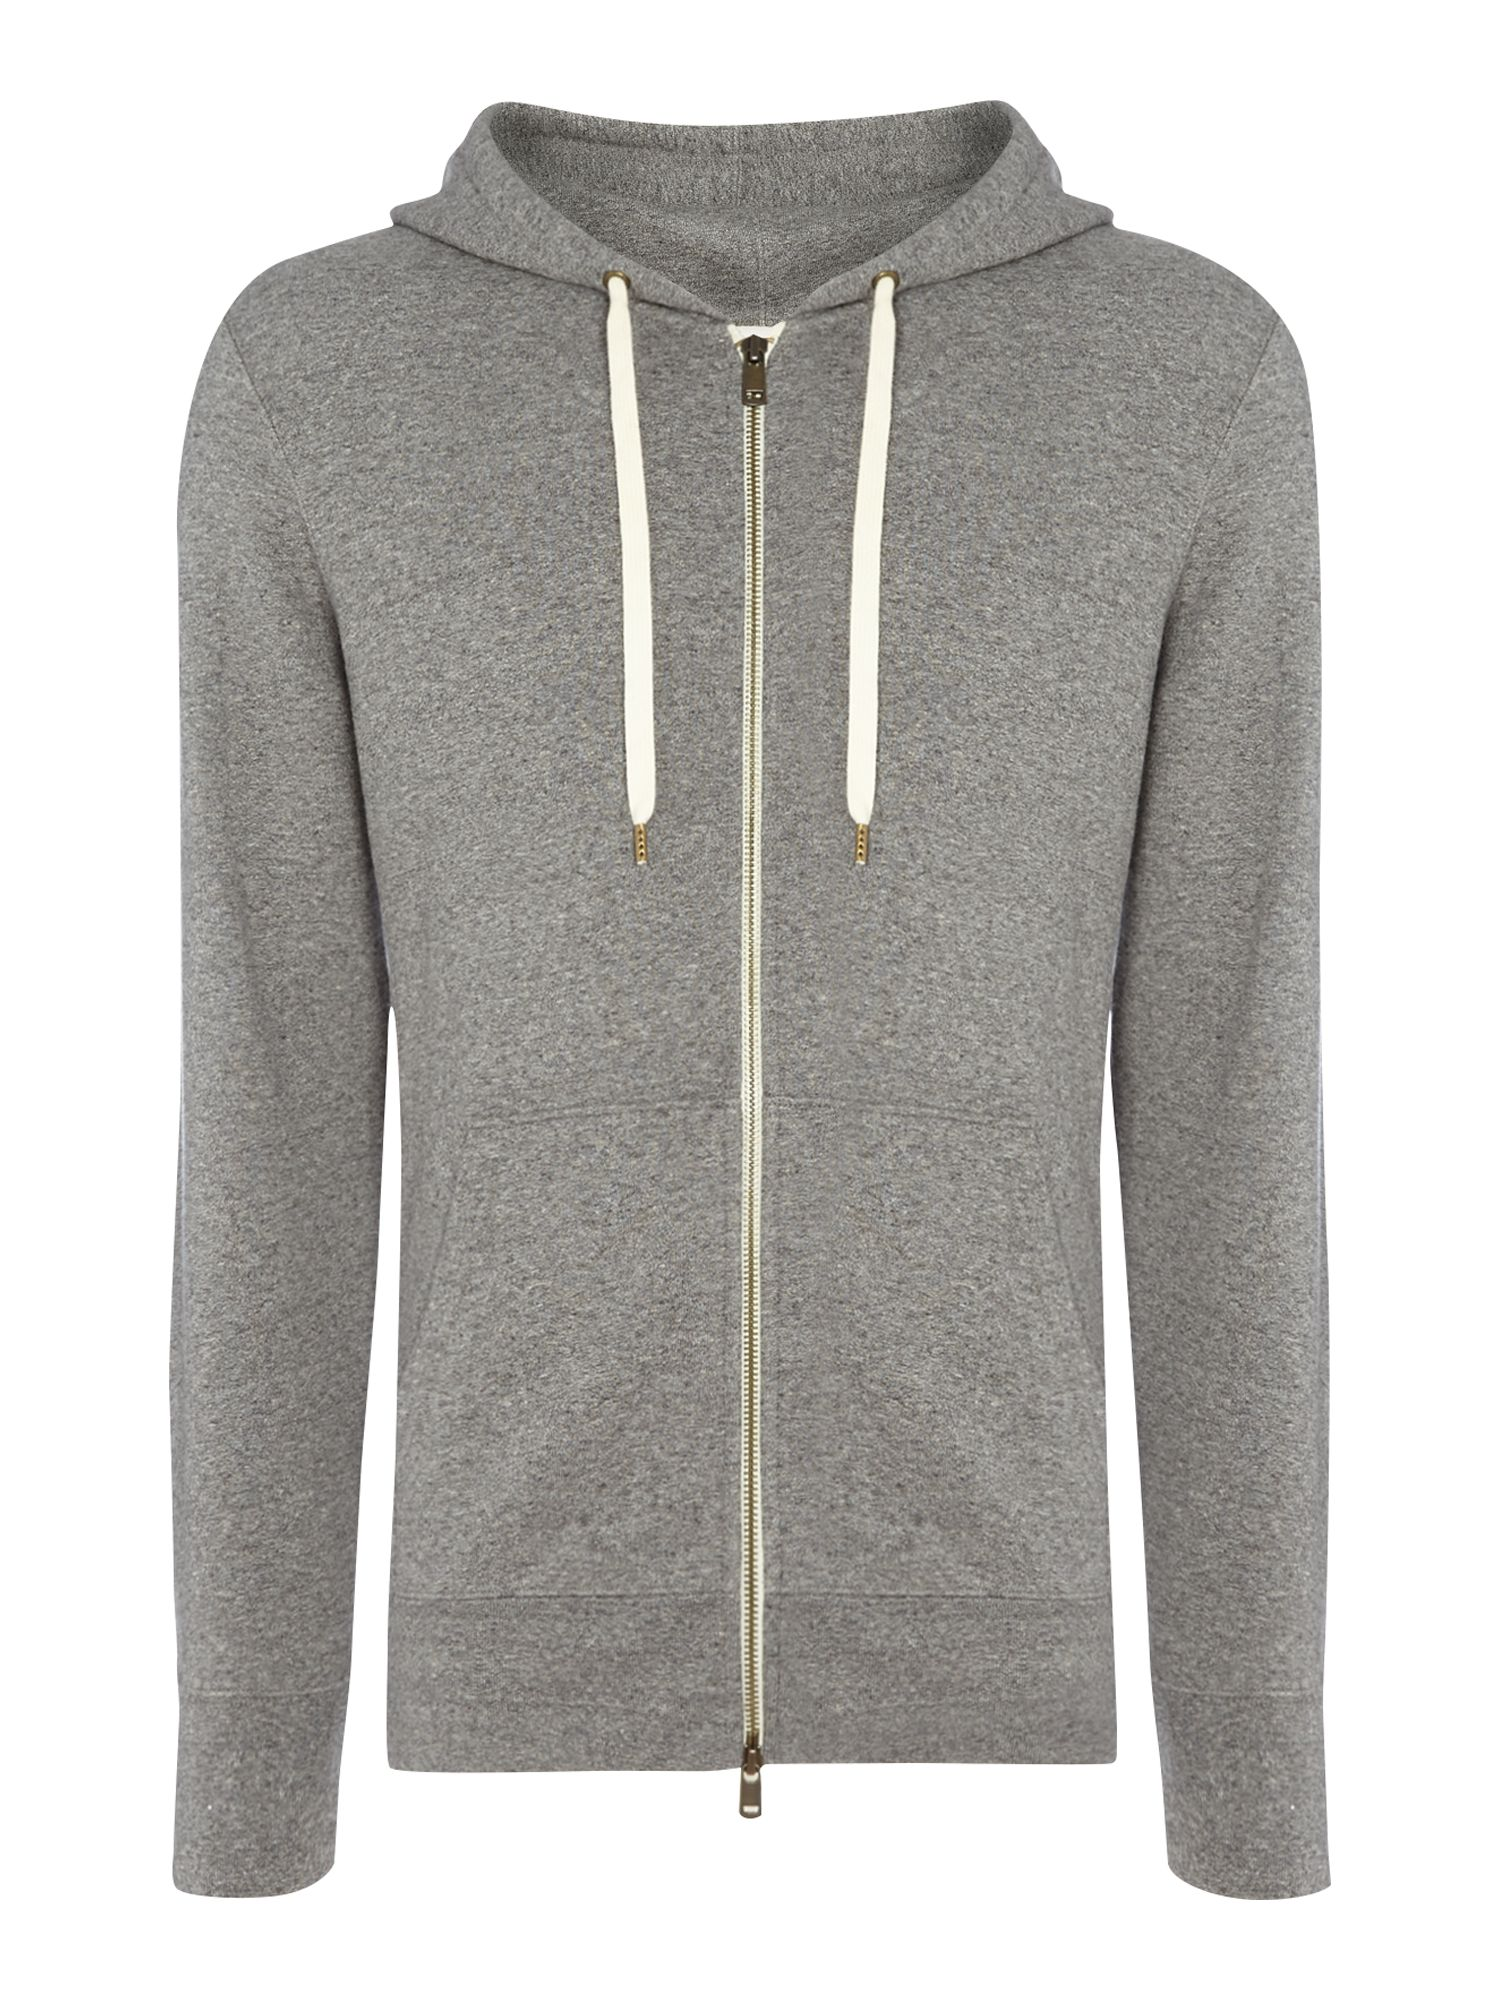 Men's Levi's Classic 2 pocket zip through hoodie, Grey